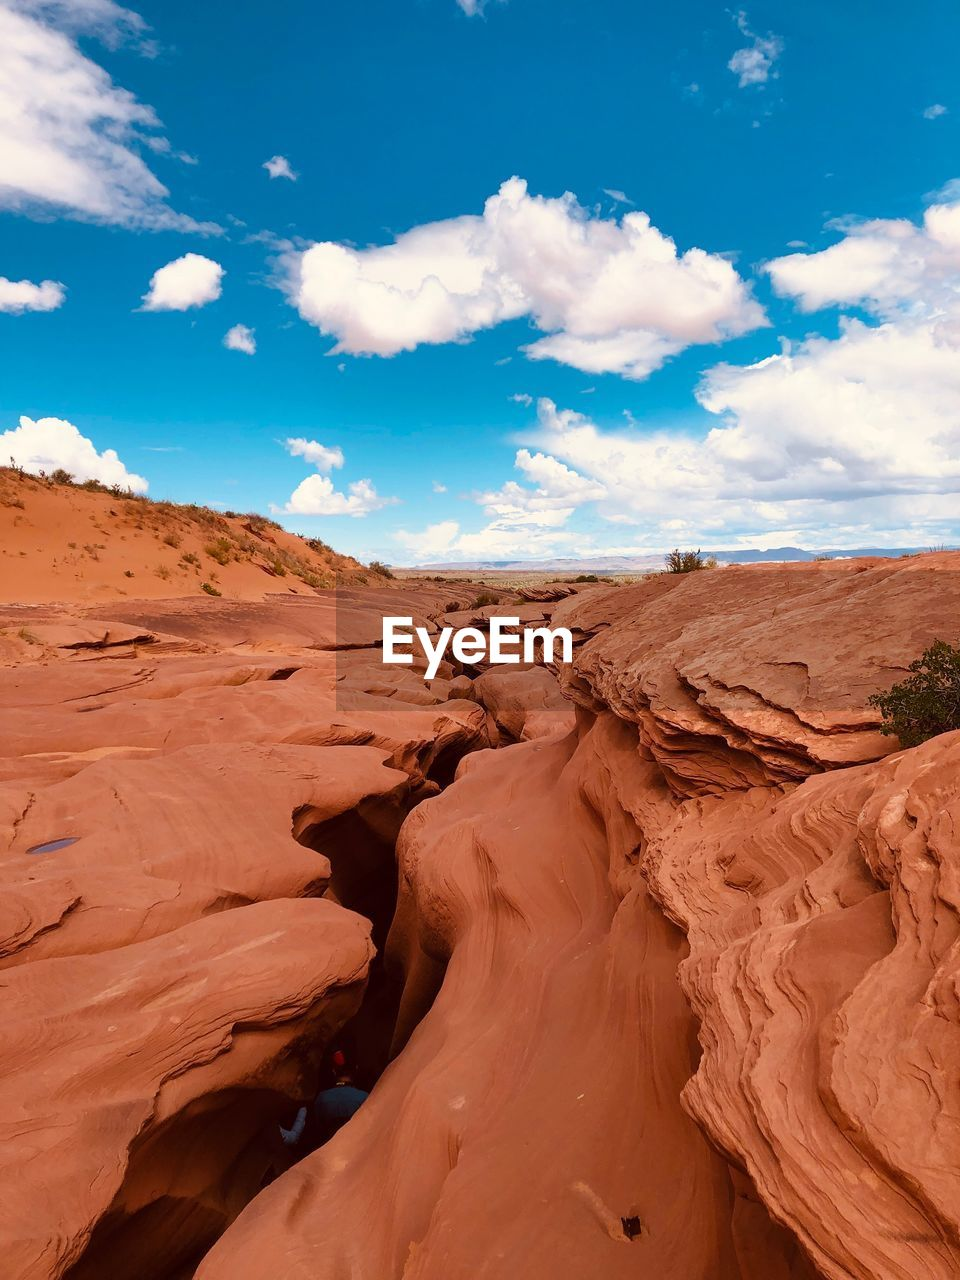 cloud - sky, sky, scenics - nature, tranquil scene, non-urban scene, tranquility, beauty in nature, landscape, environment, land, climate, arid climate, desert, physical geography, nature, rock formation, remote, day, sand, rock, no people, eroded